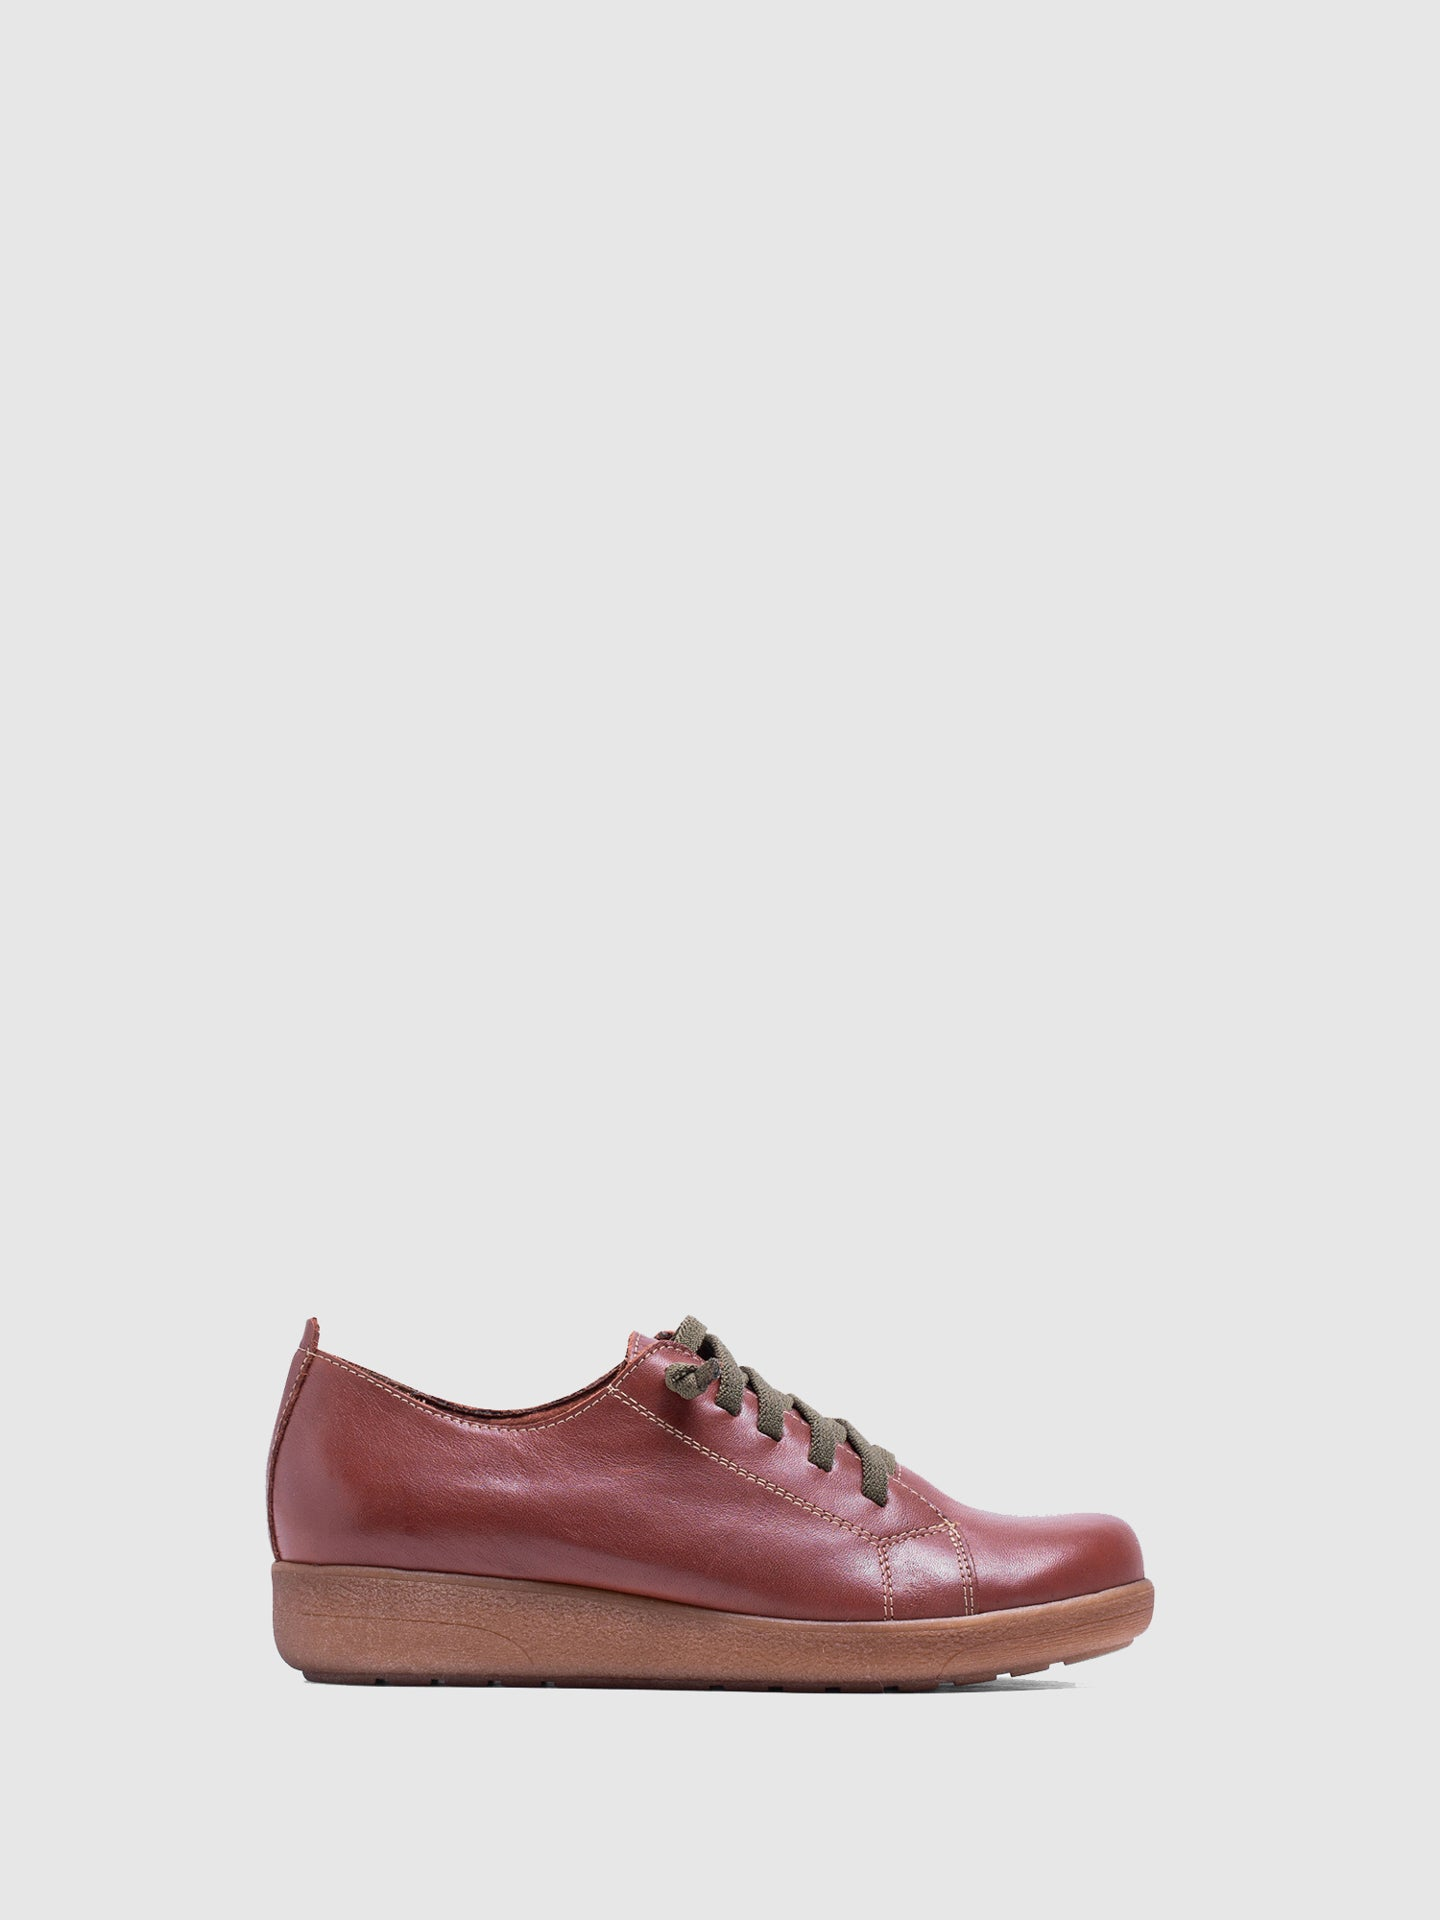 MARILA SHOES Brown Leather Lace-up Shoes